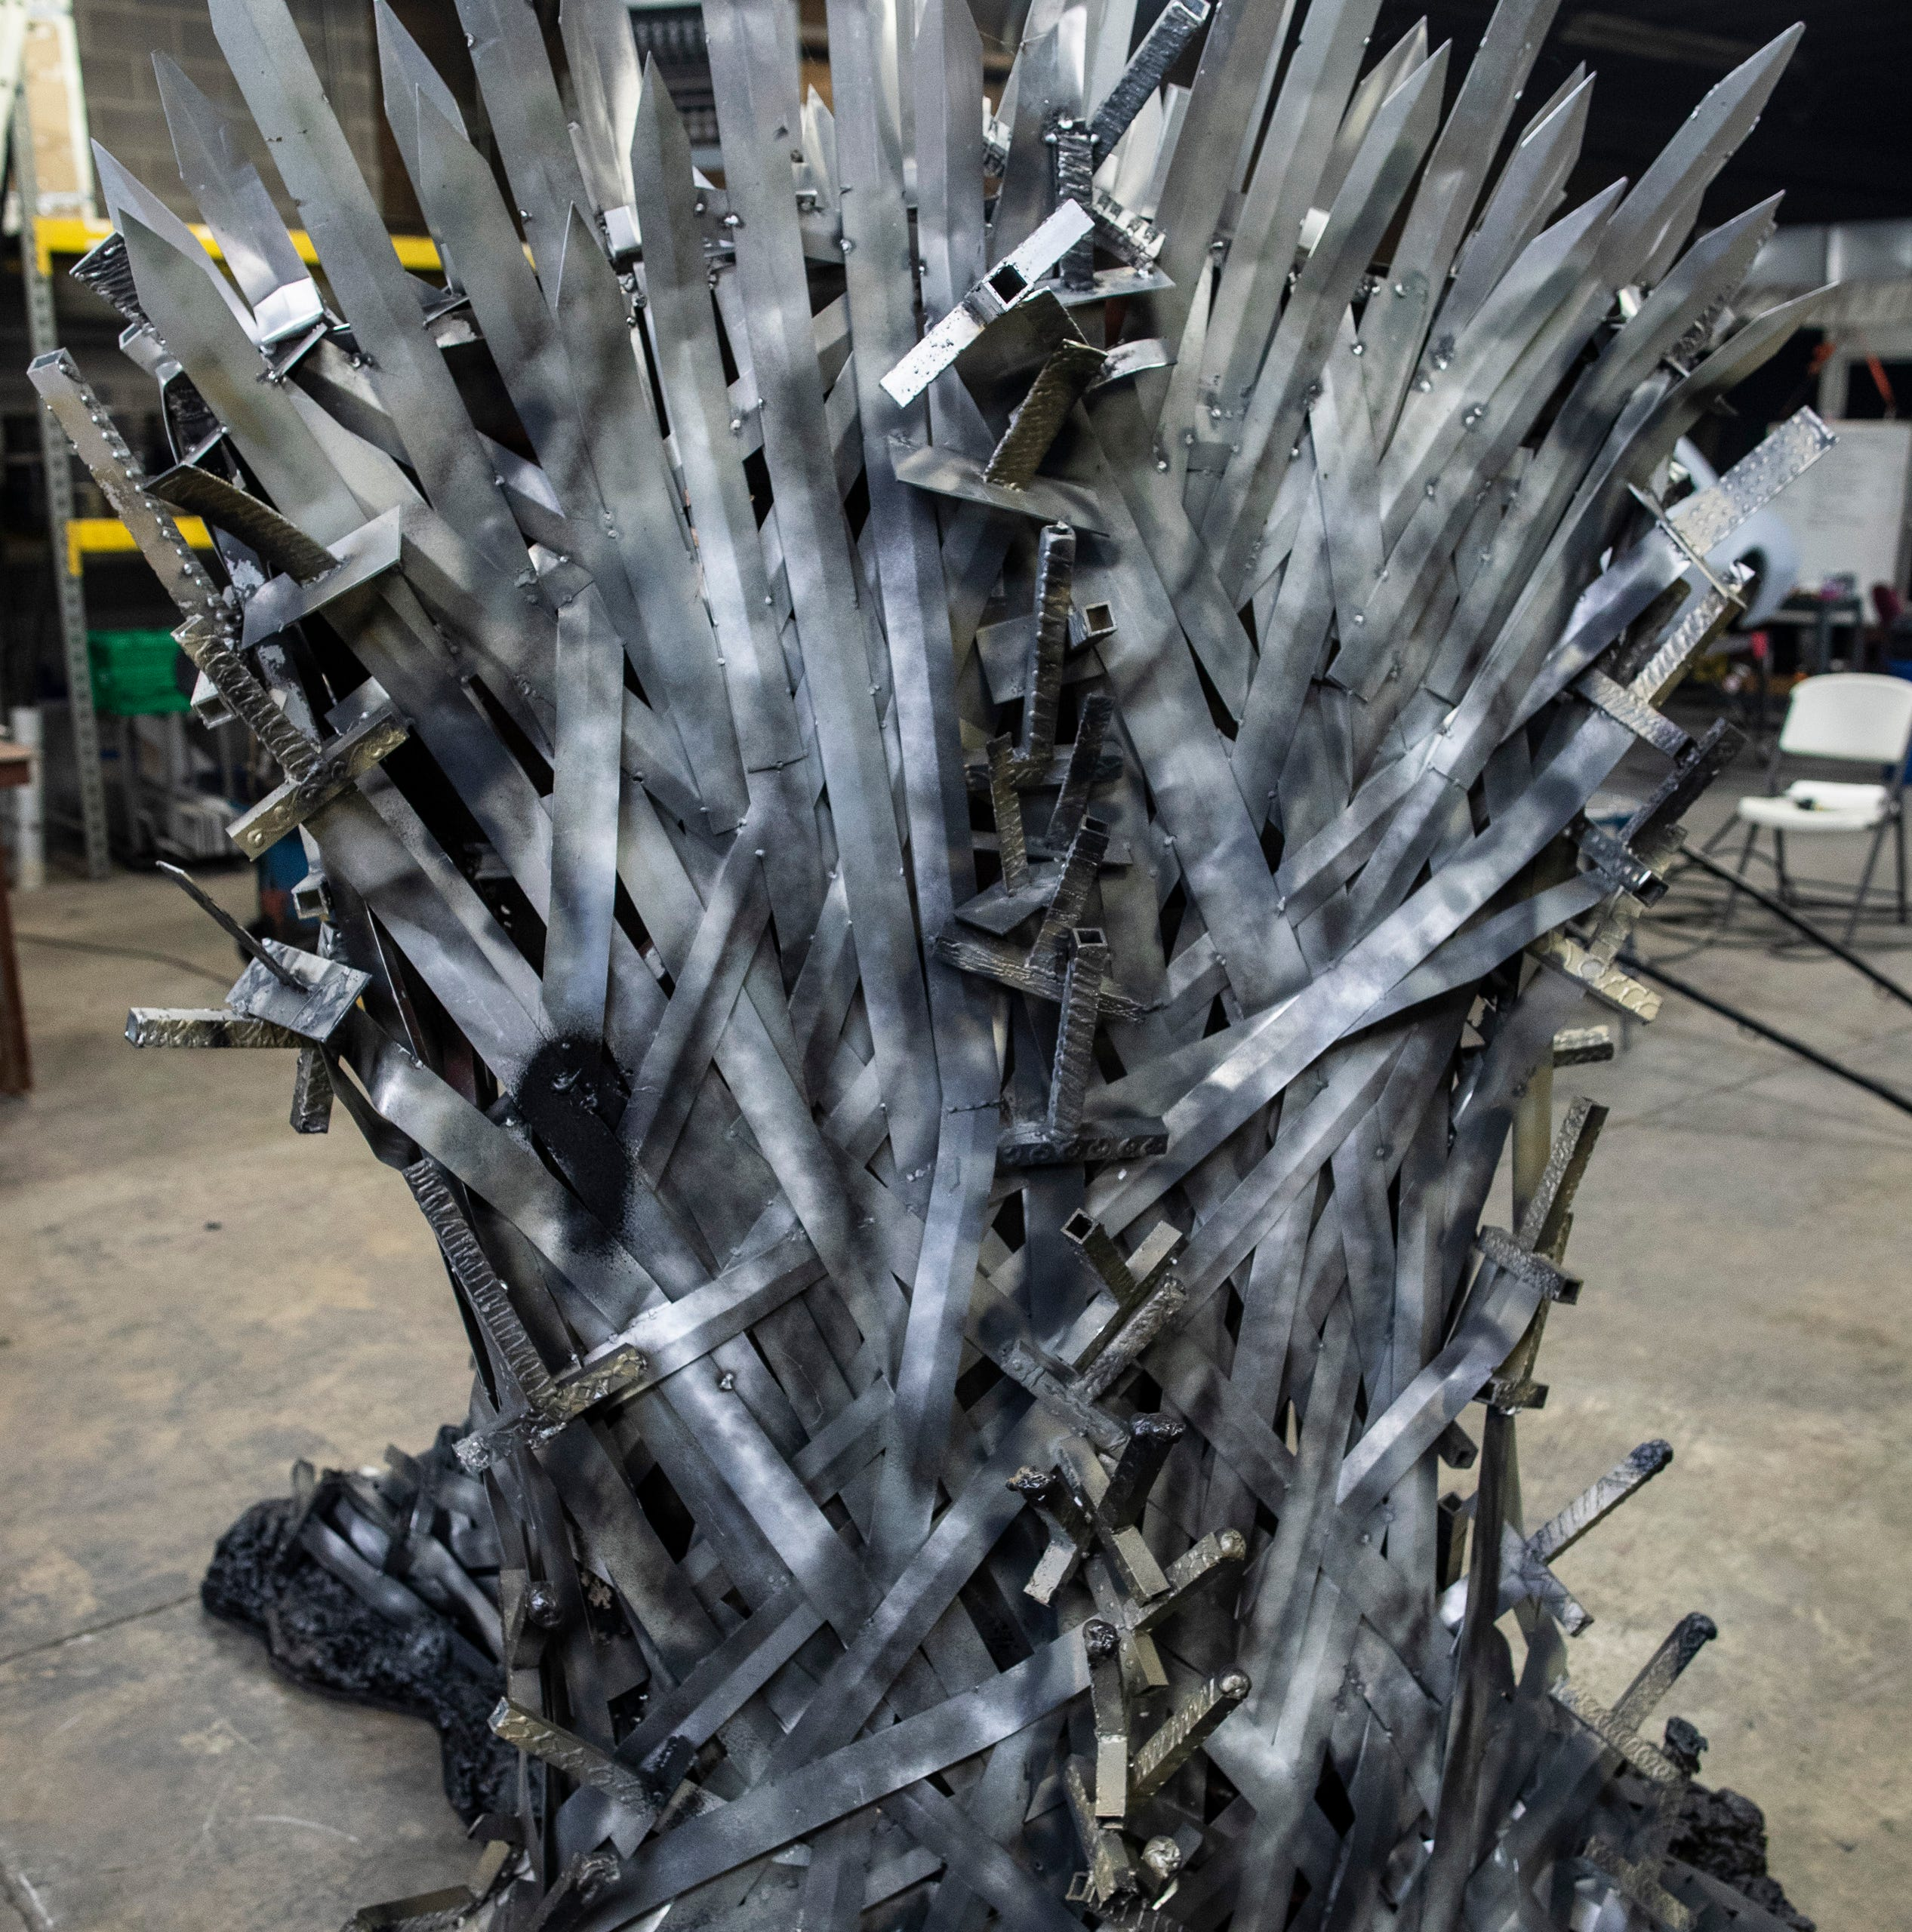 A Louisville welder, and 'Game of Thrones' fan, built an Iron Throne for his wife